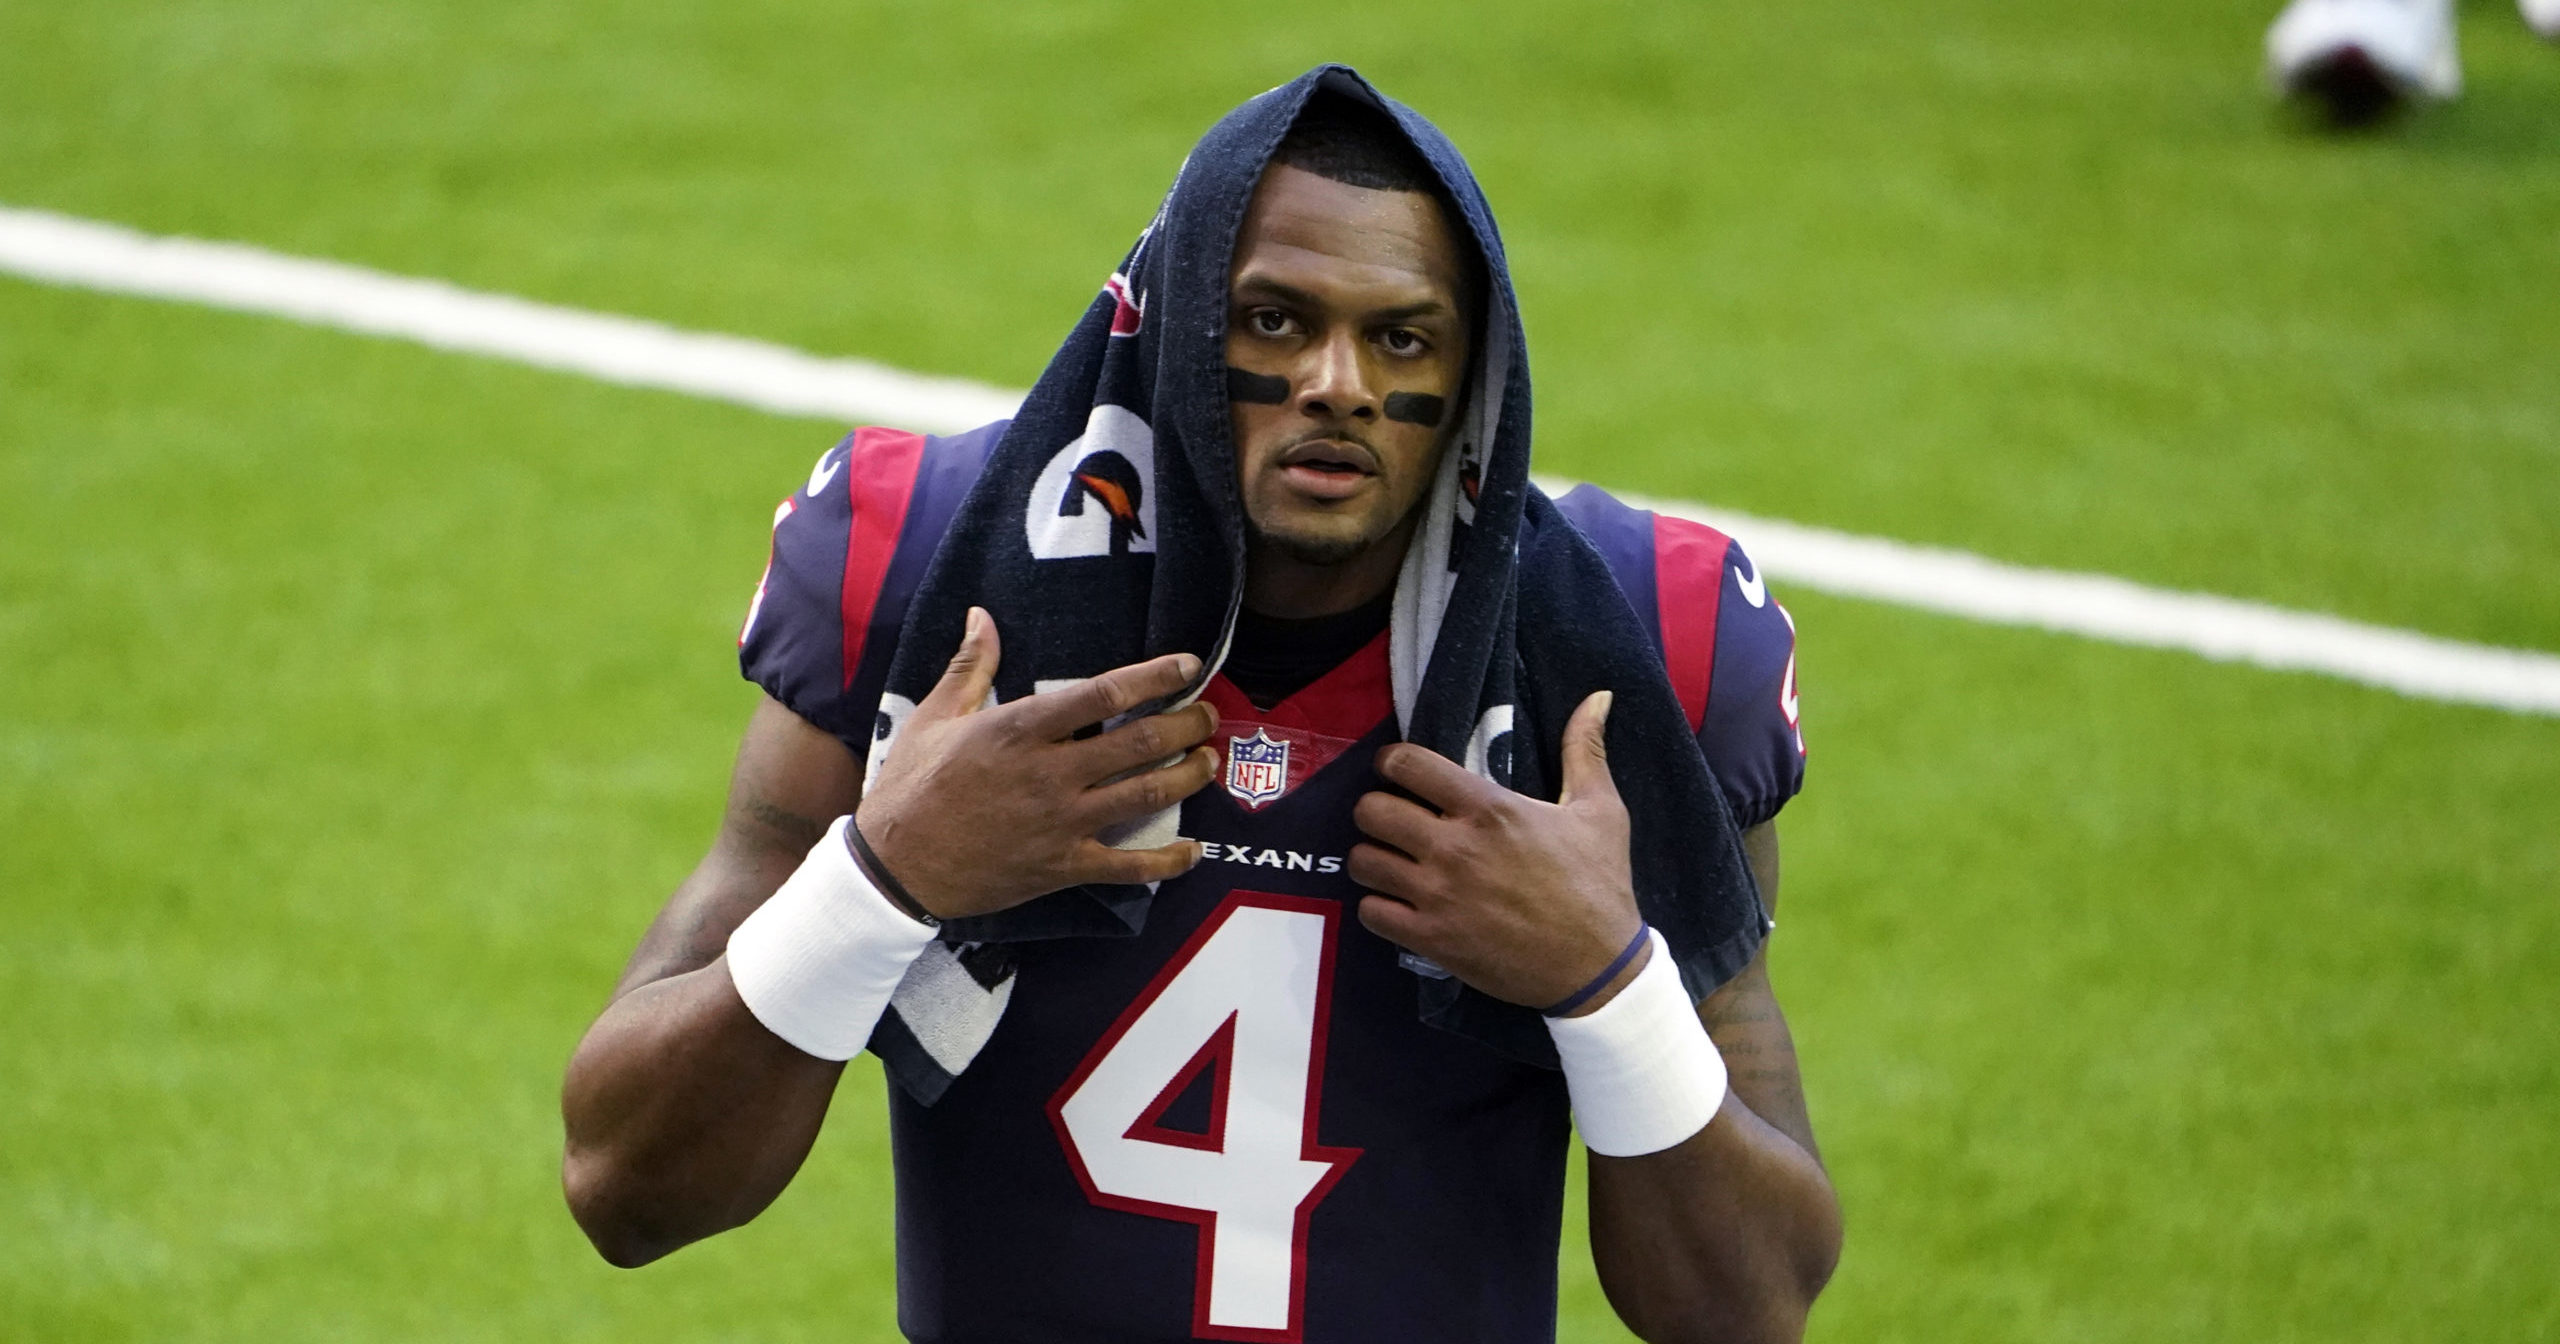 Houston Texans quarterback Deshaun Watson walks off the field before the team's NFL football game against the Tennessee Titans in Houston on Jan. 3, 2021.